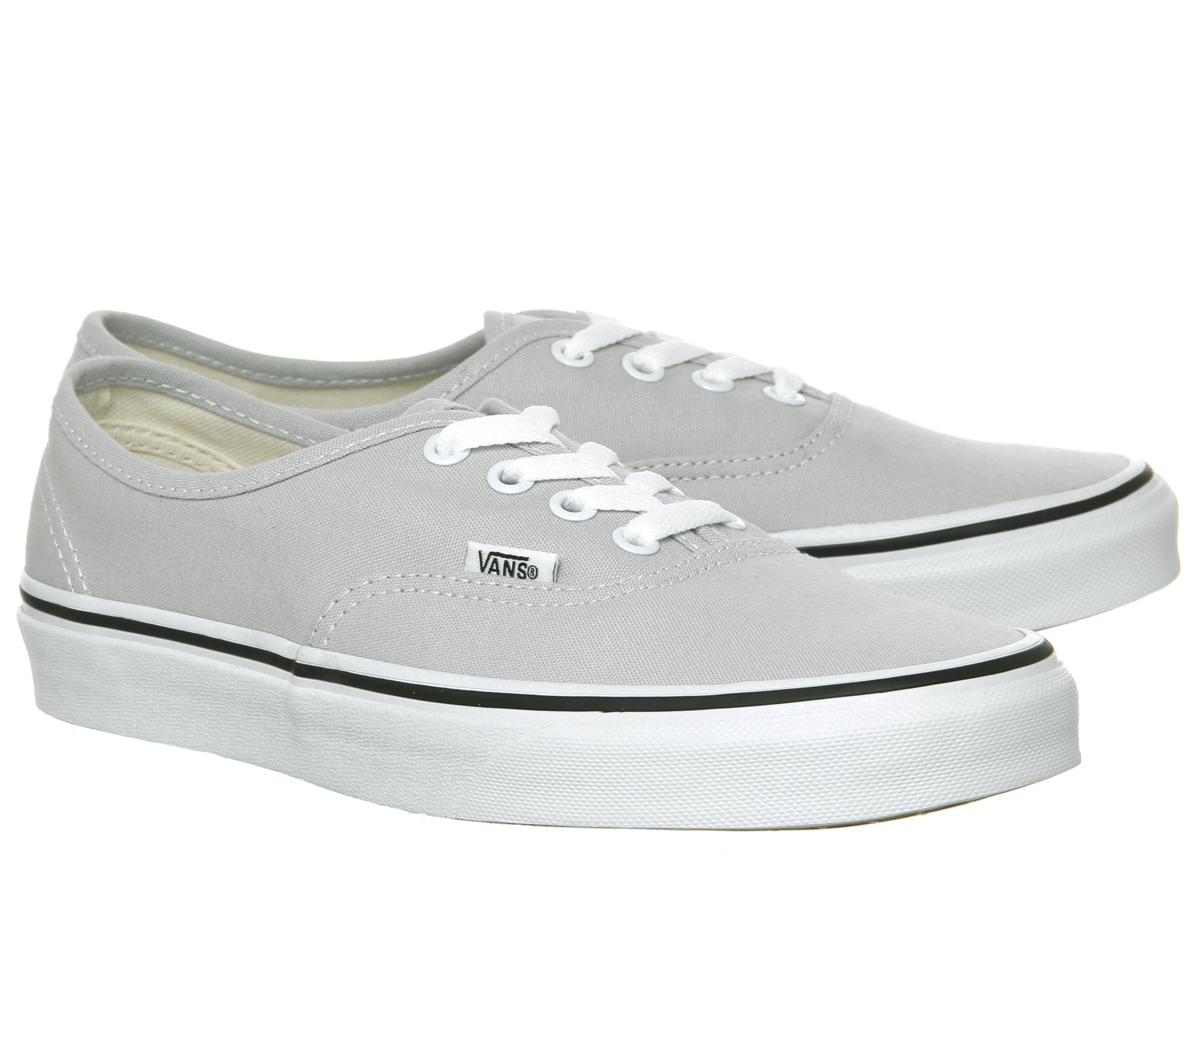 704adb7c21a7 Sentinel Womens Vans Authentic Trainers Gray Dawn True White Trainers Shoes